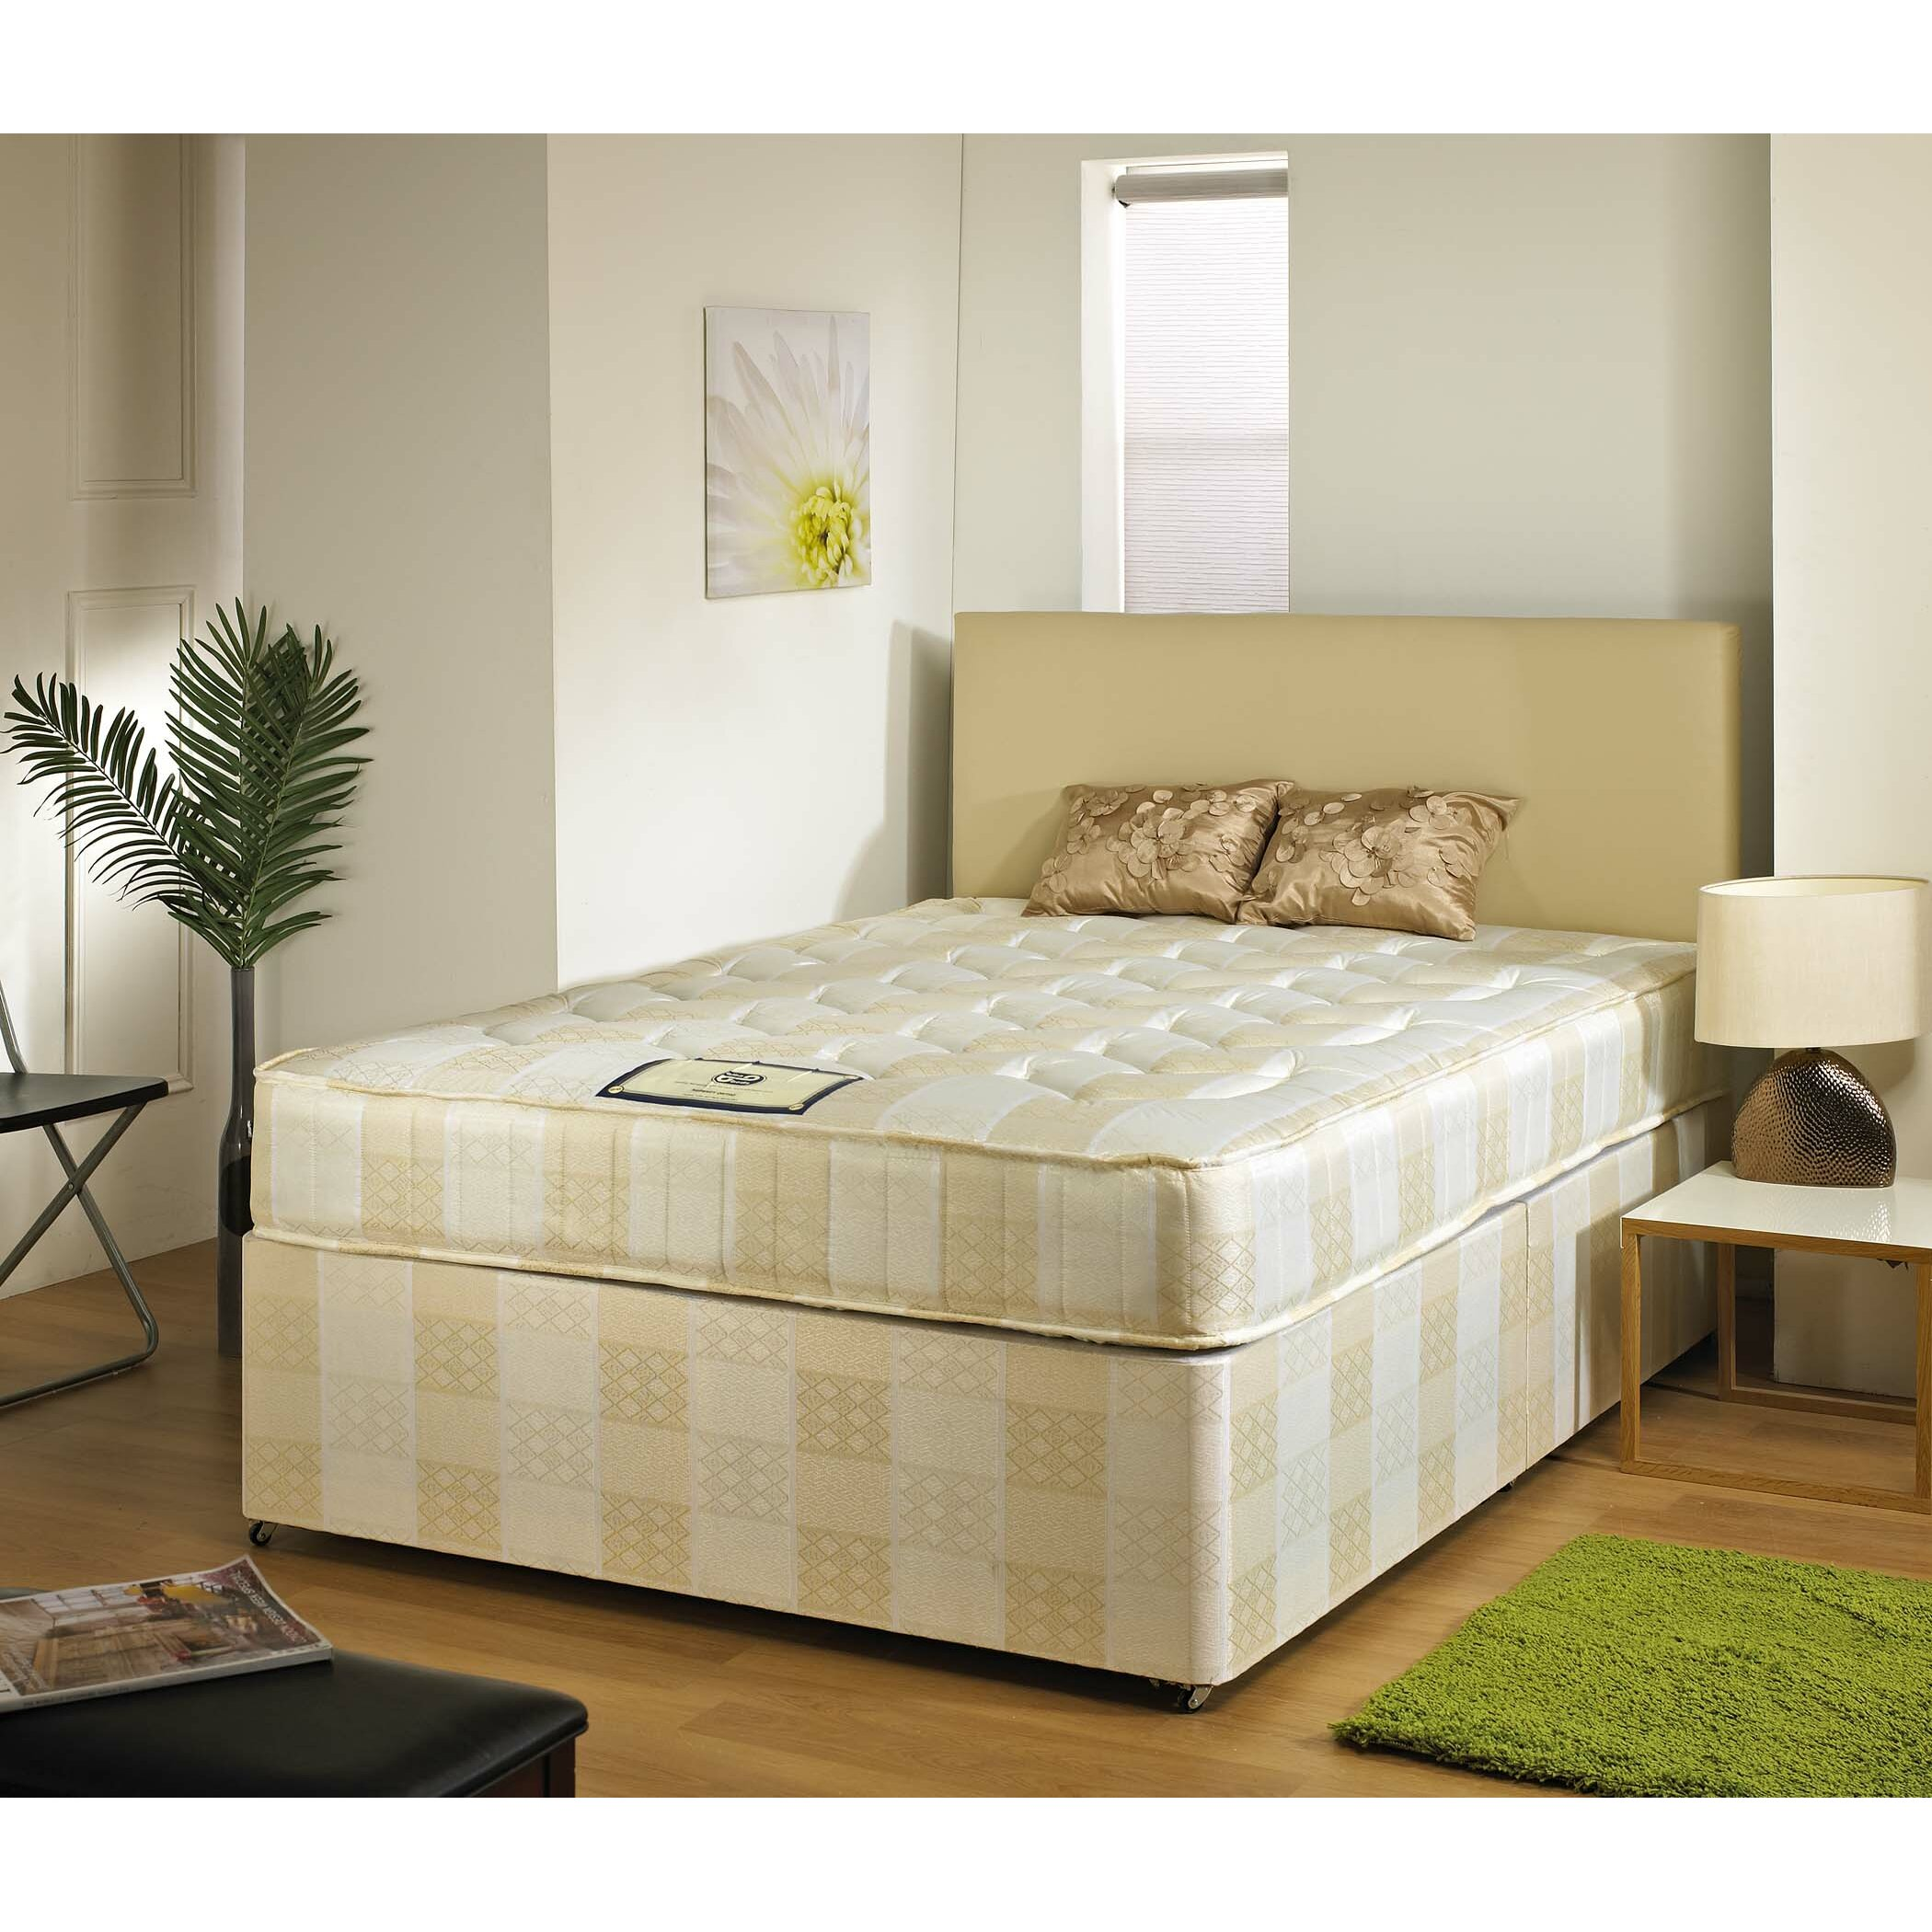 Regency Bedroom Furniture Home Etc Regency Divan Bed Reviews Wayfaircouk